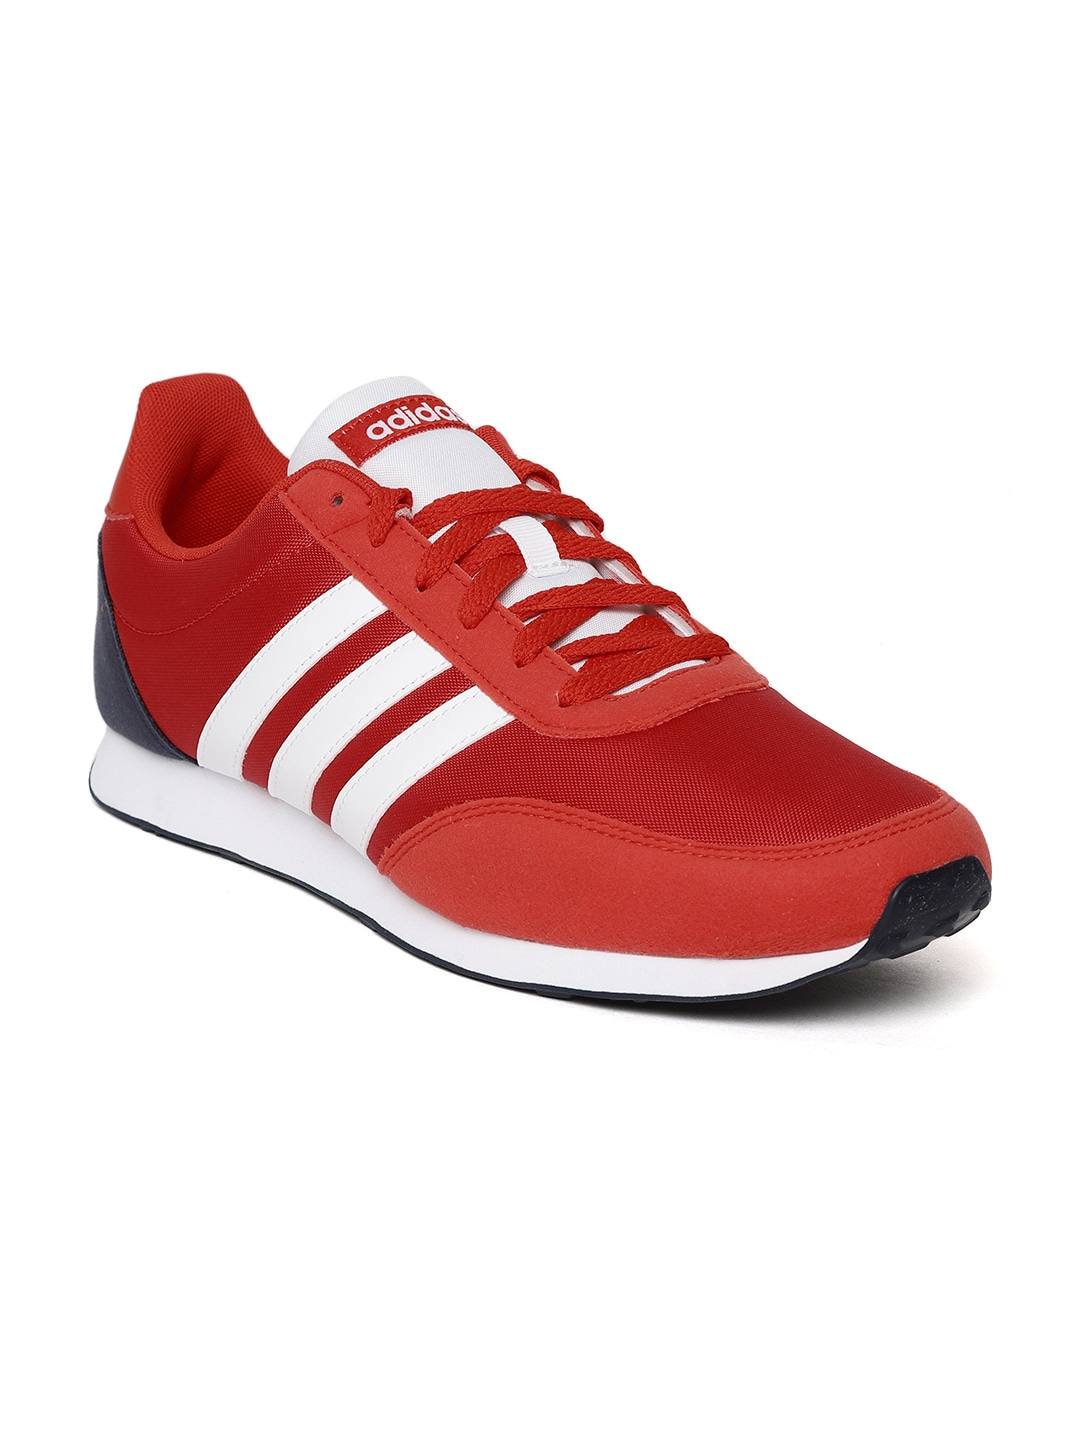 f67c06dfdb93 Adidas Racer - Buy Adidas Racer online in India